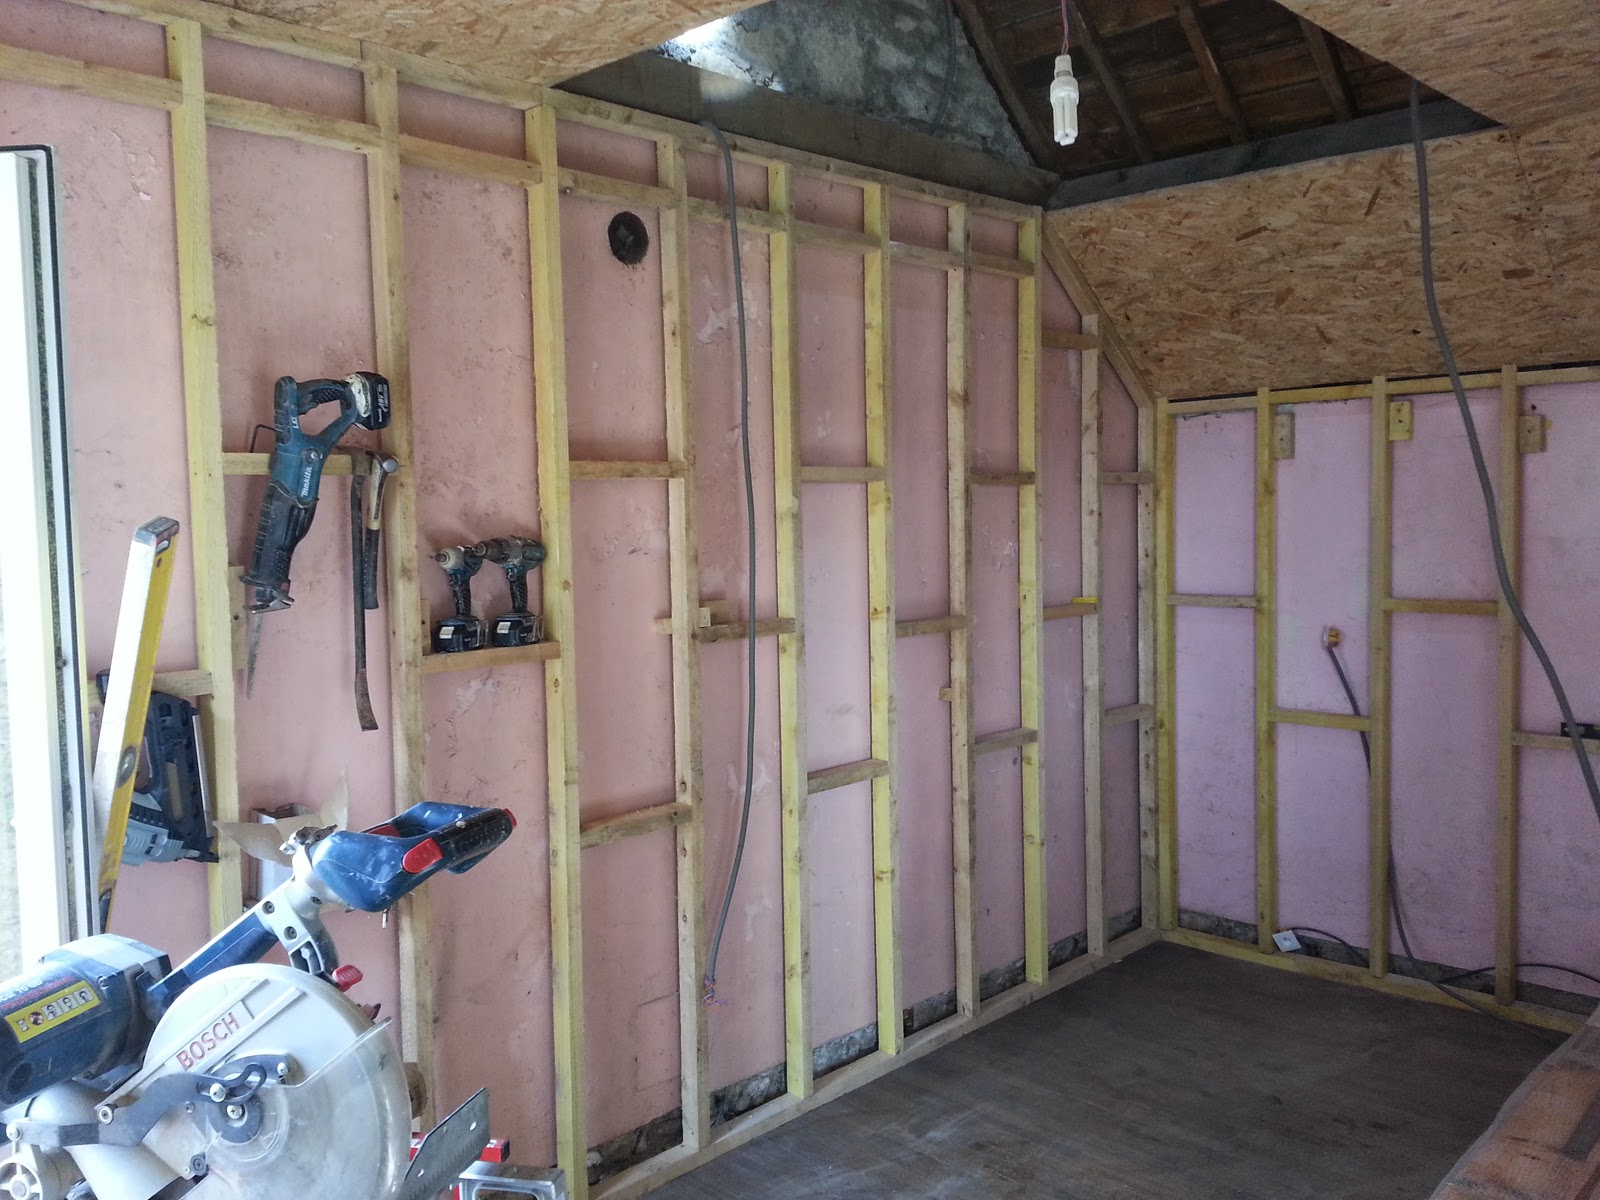 The Stud Work Is Not For Partitioning But For Adding Insulation To The Interior  Walls.